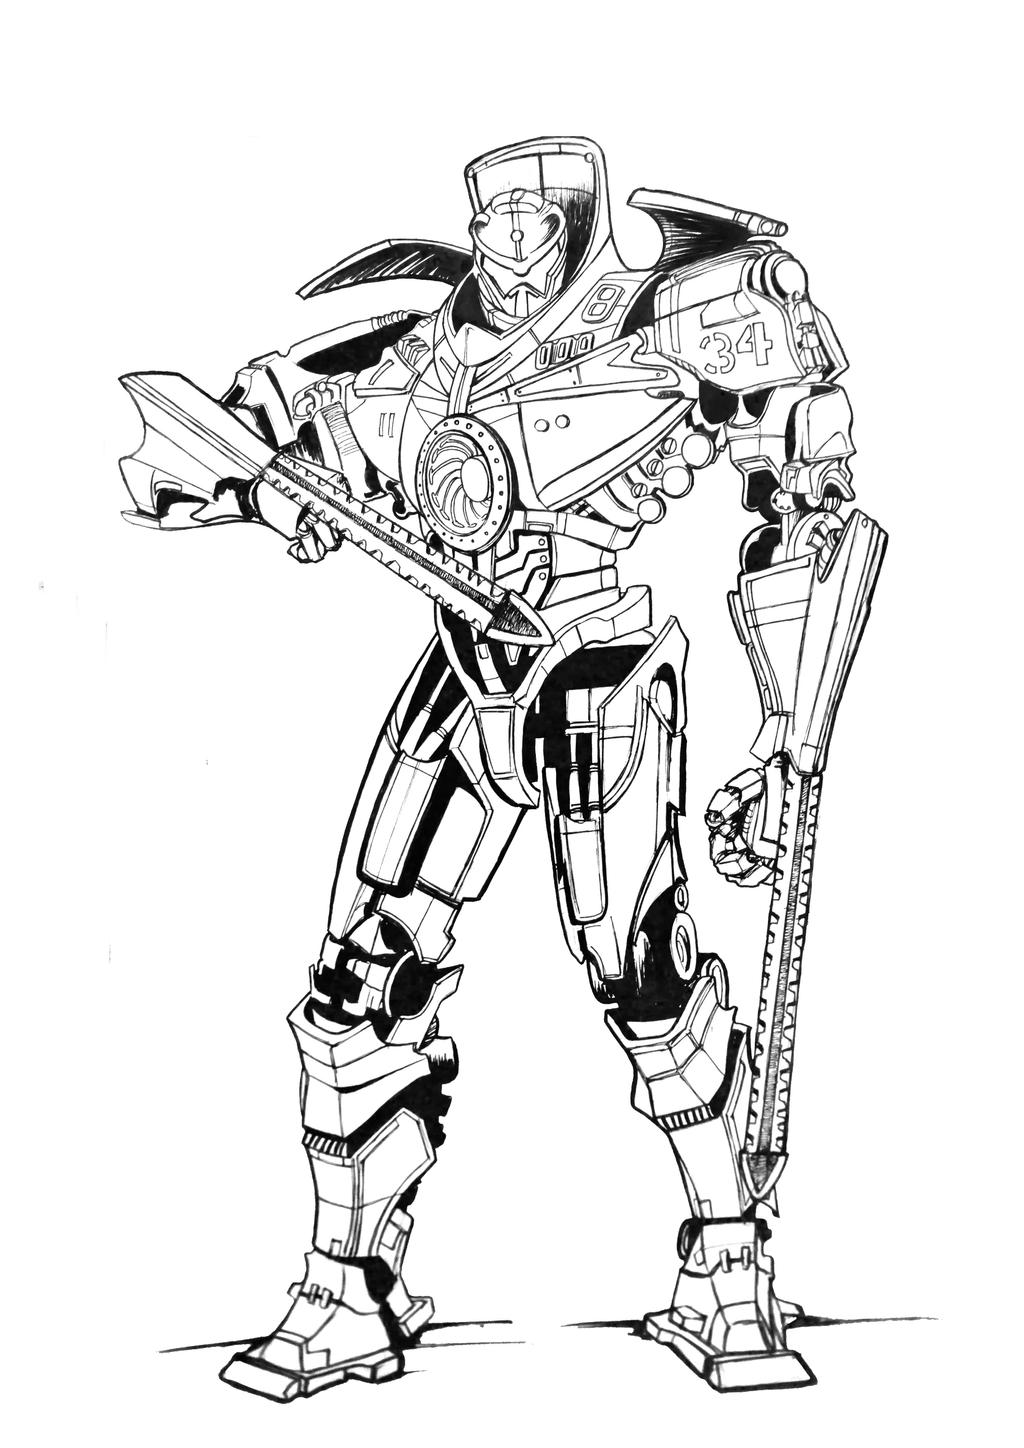 gipsy danger by ultraseven81 on deviantart